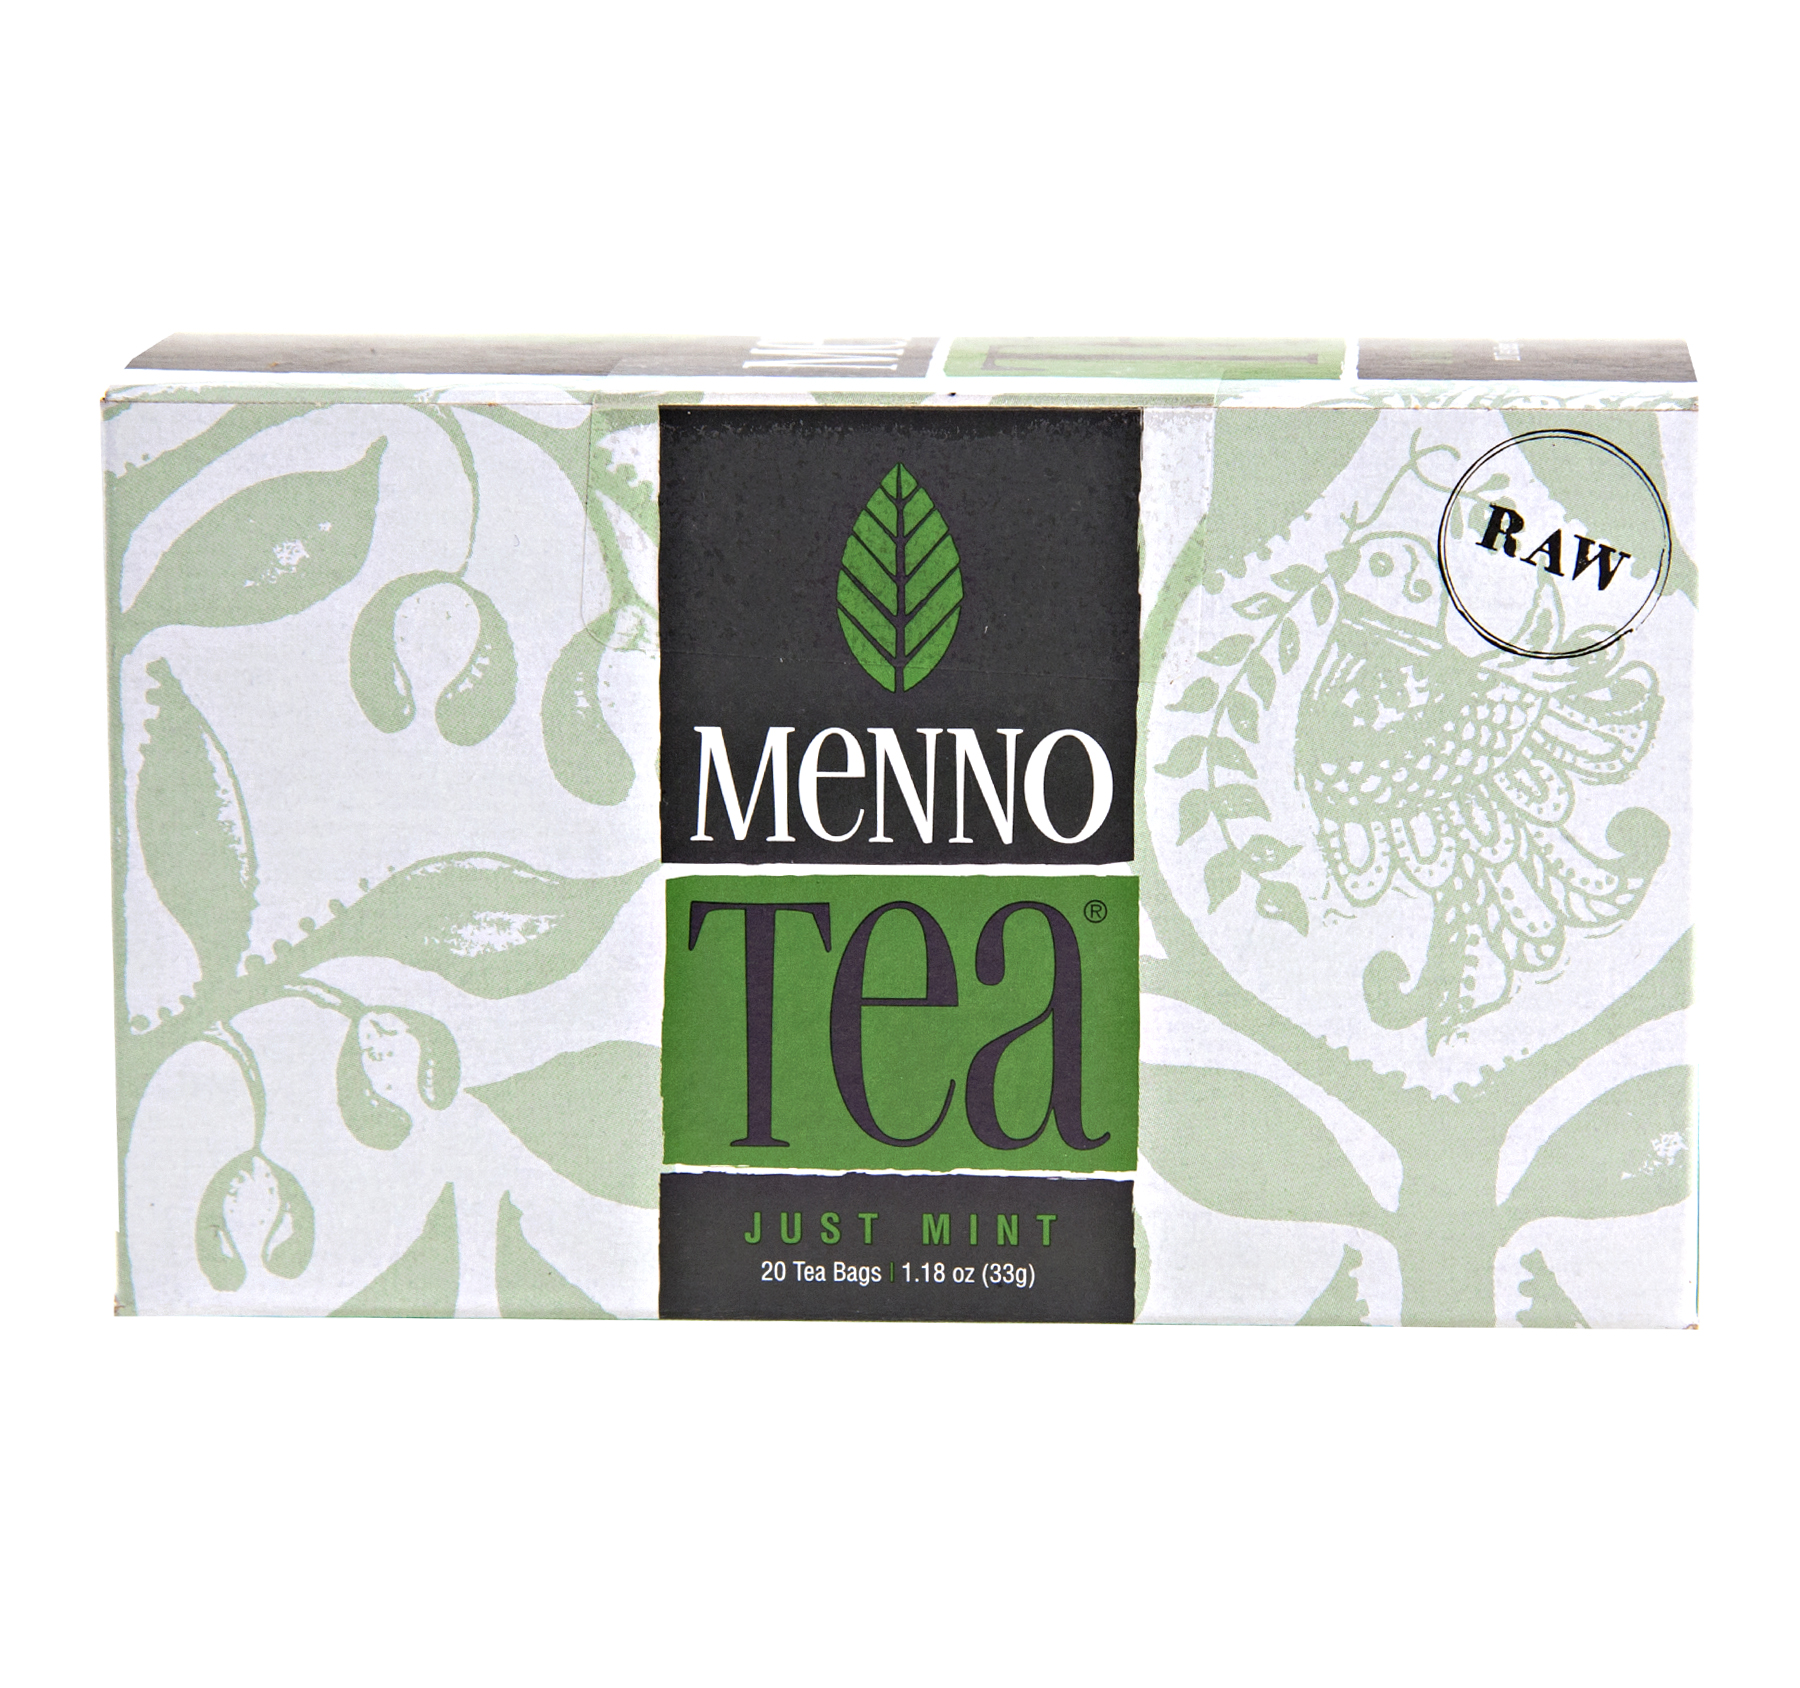 menno-tea-raw-just-mint-white.jpg